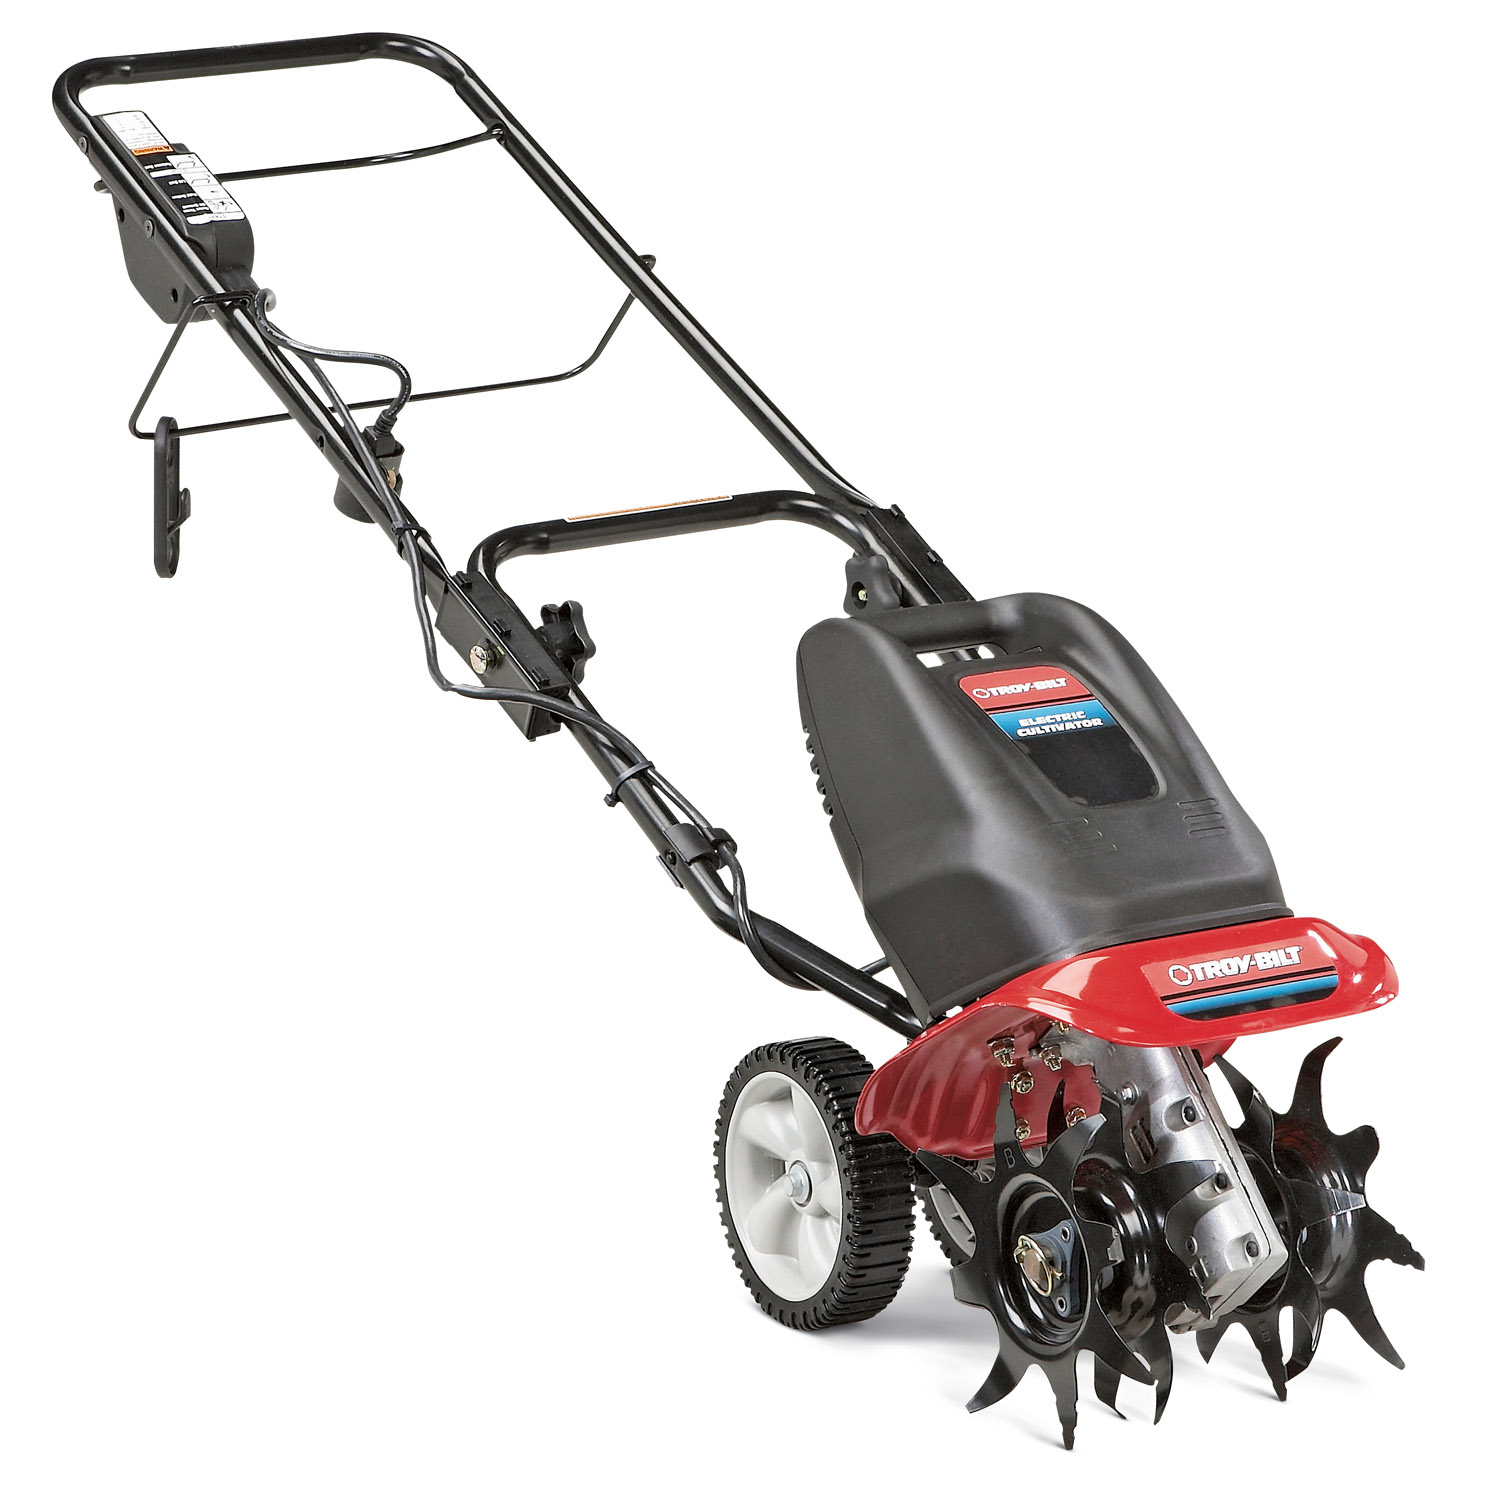 MTD Troy-Bilt TB154E Lightweight 6.5 Amp Electric Garden ...